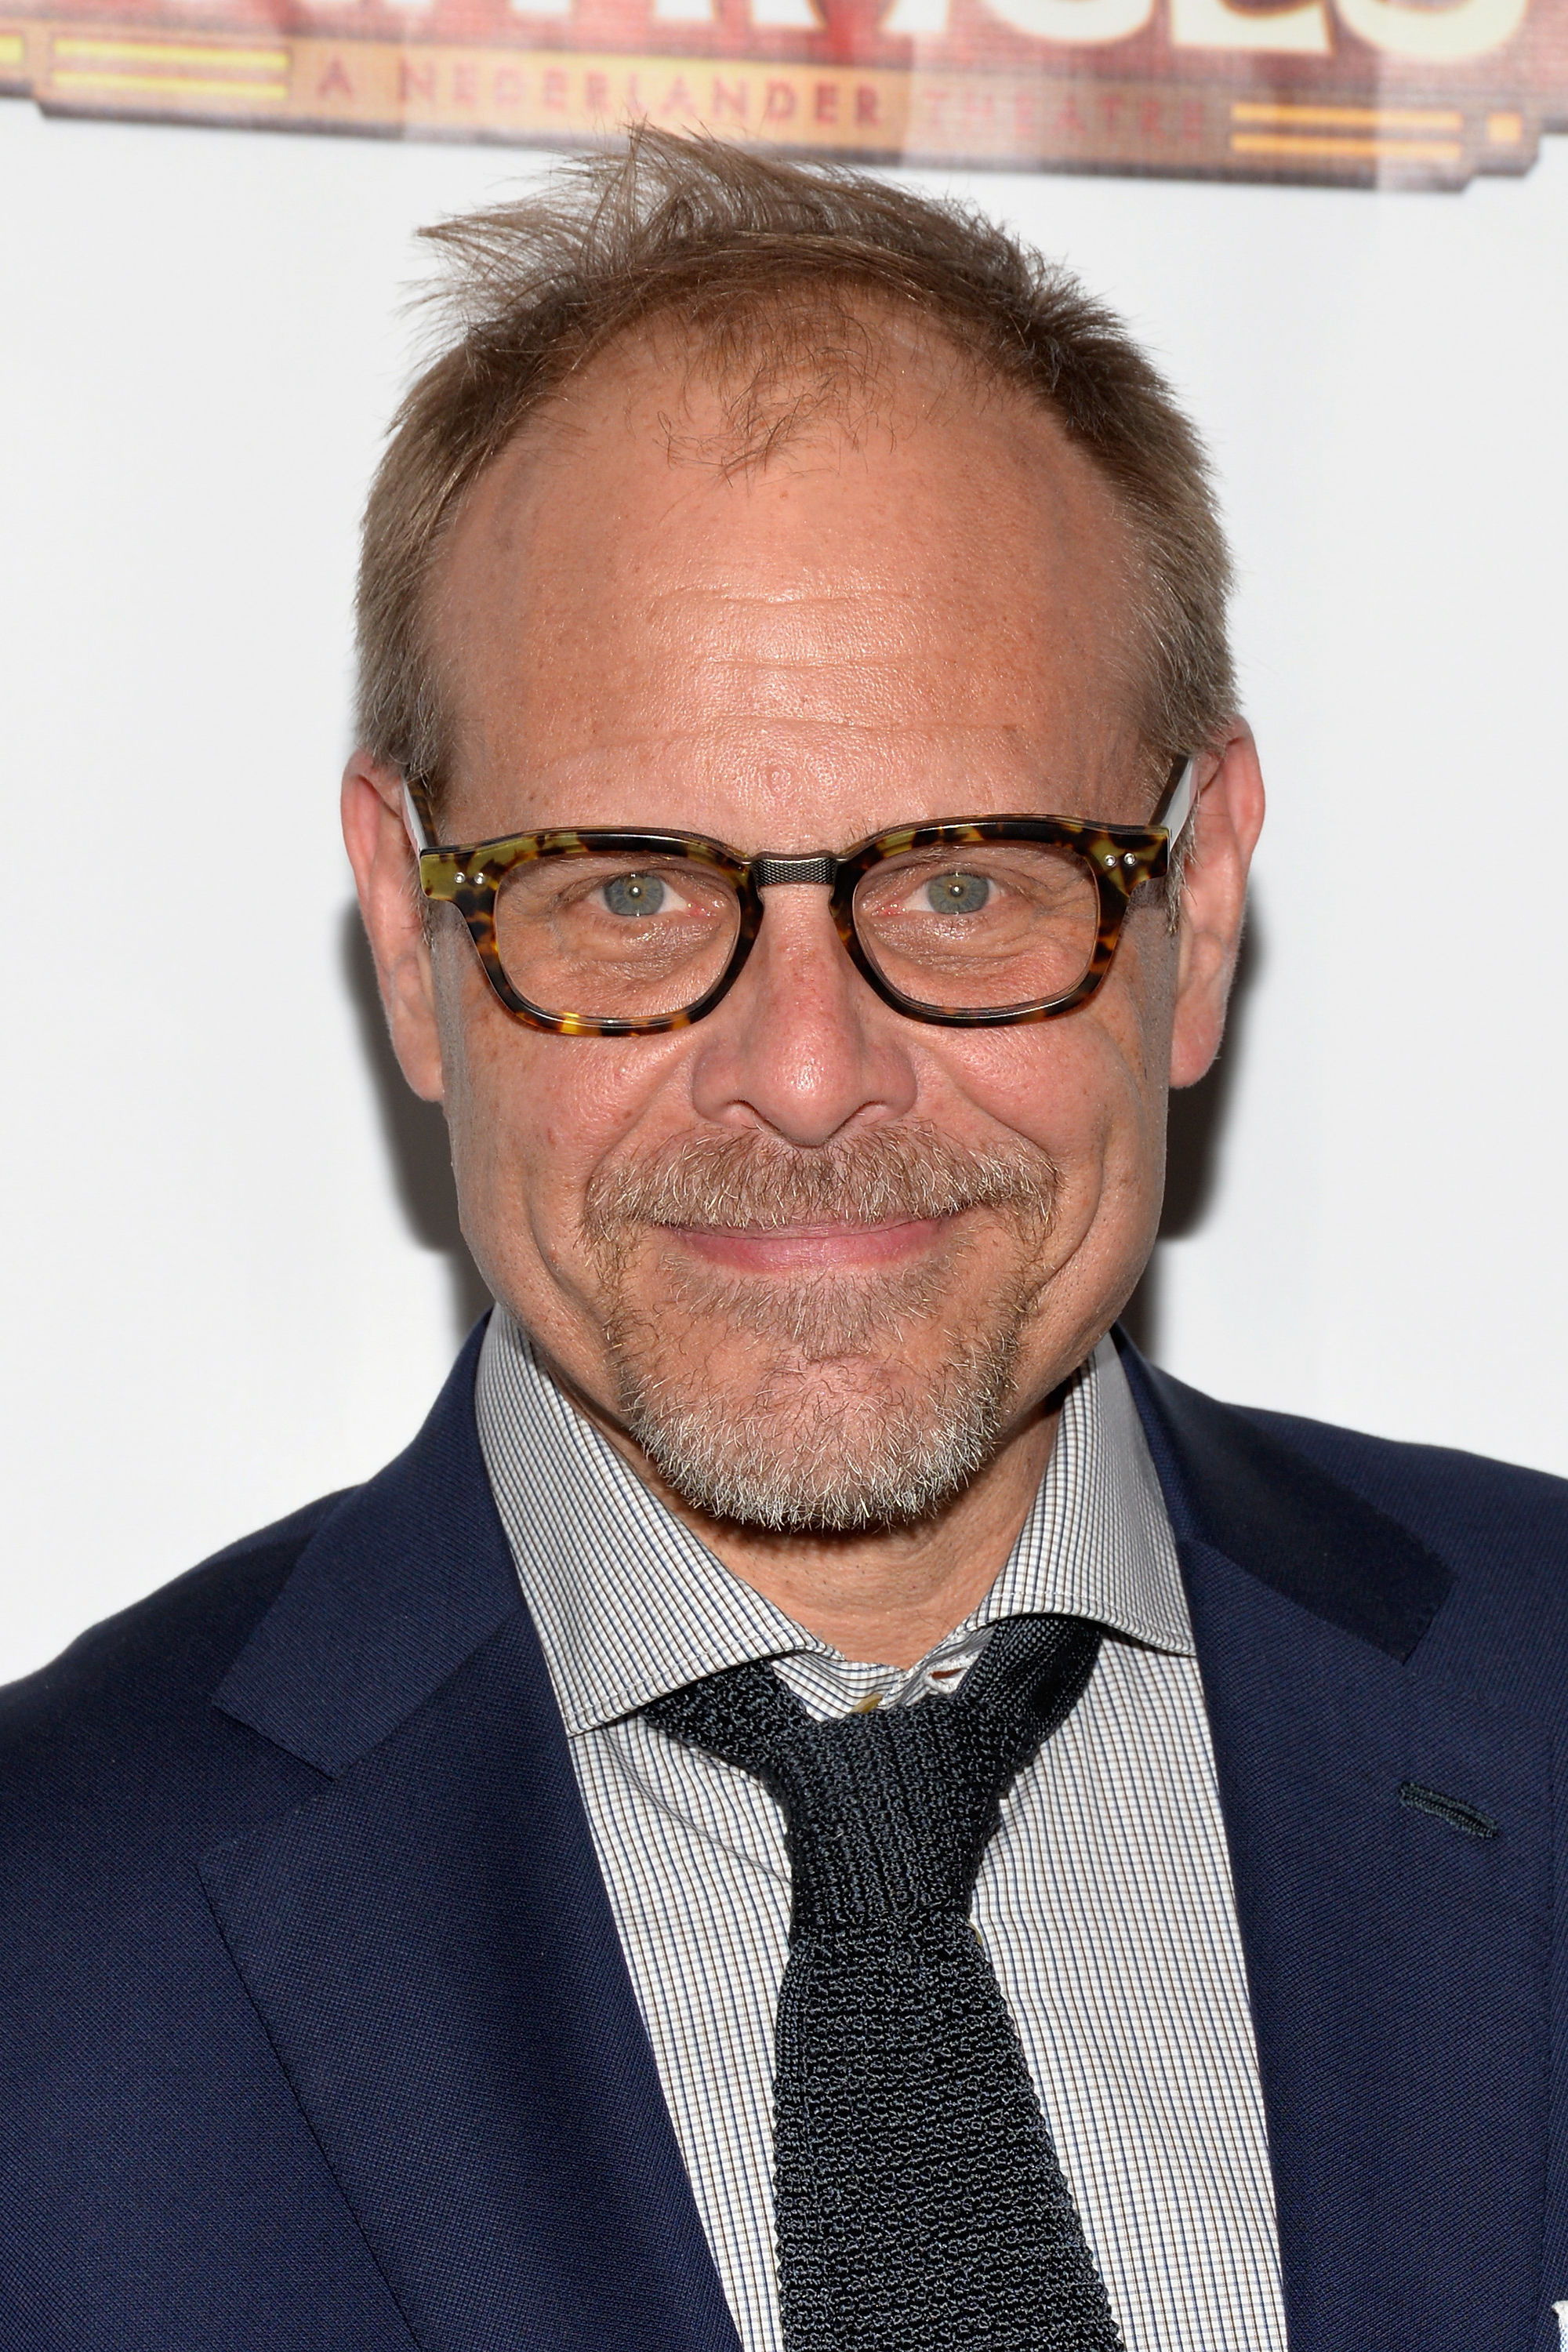 Alton Brown's Simple Hack for Brewing Better Coffee